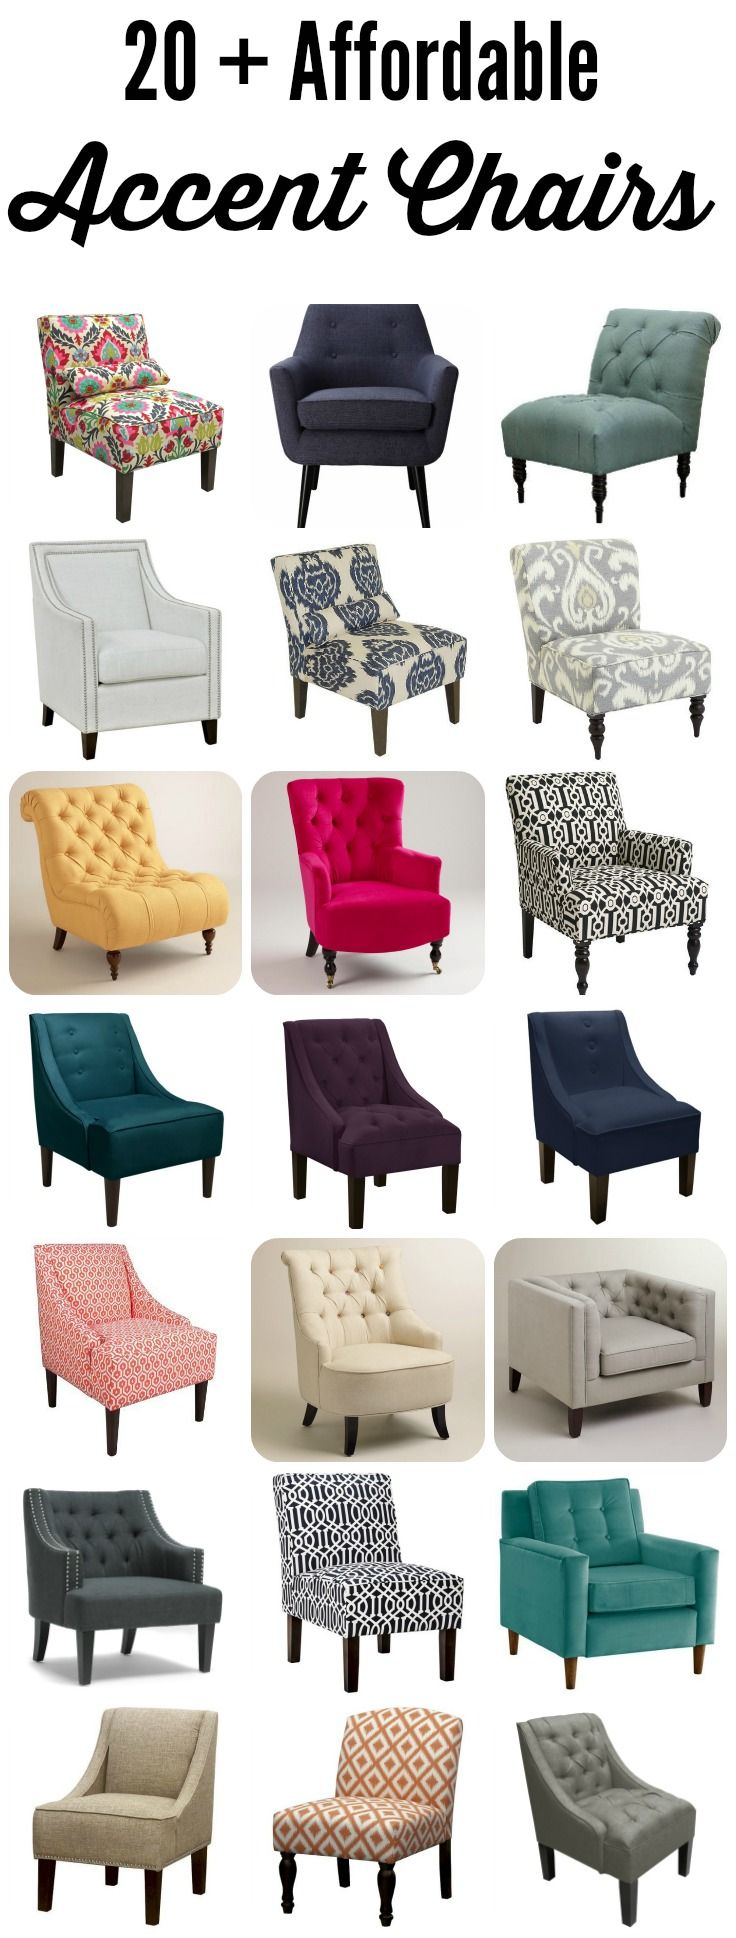 best 25 living room accent chairs ideas on pinterest accent omg this list of more than 20 affordable accent chairs is amazing i can